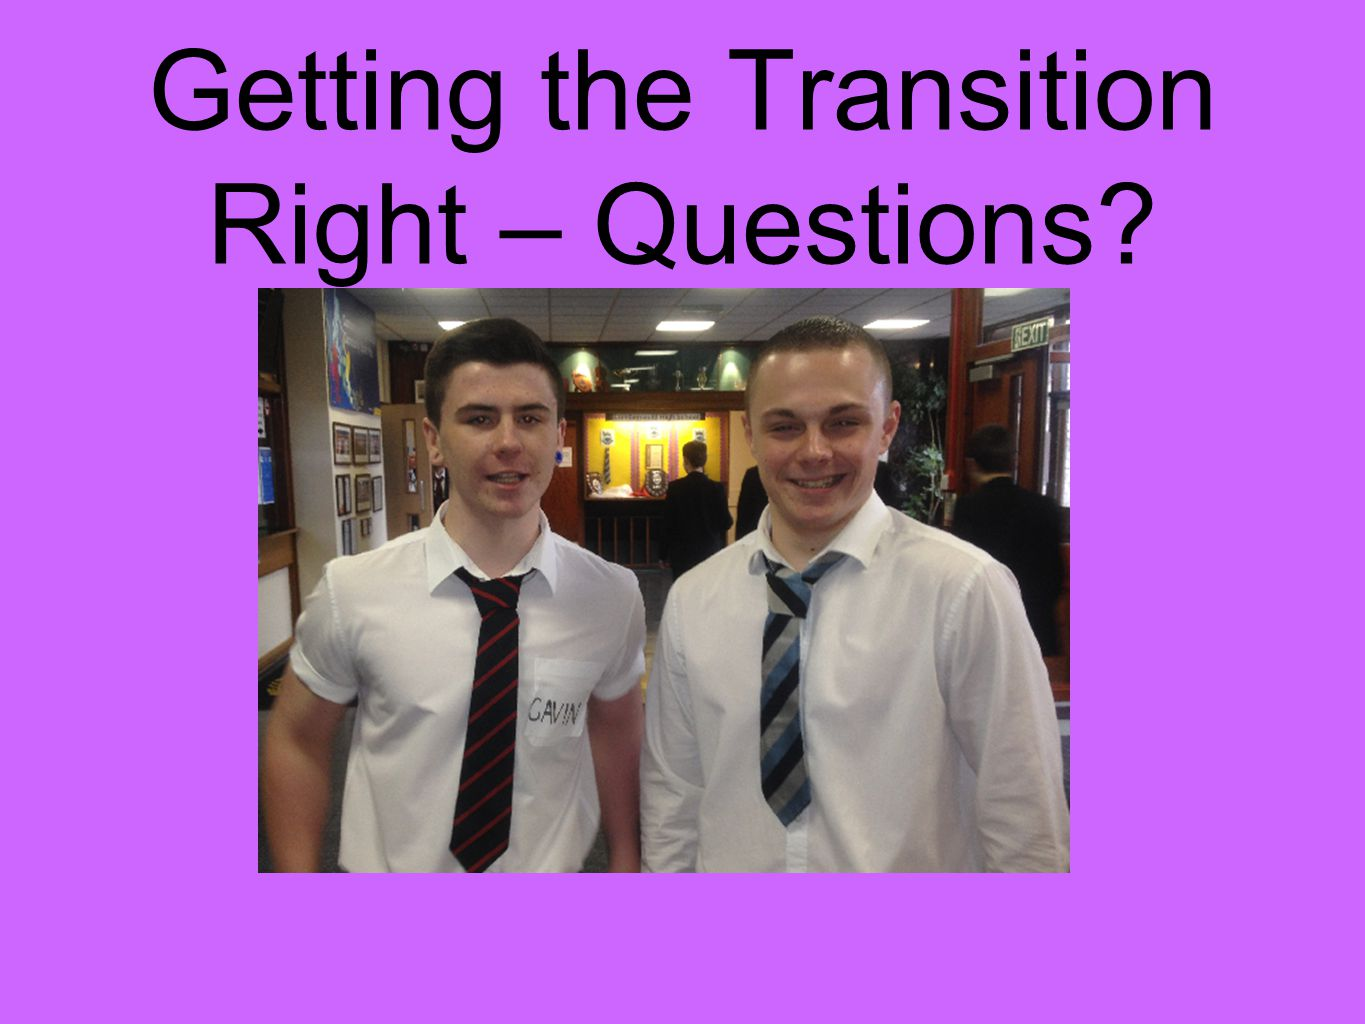 Getting the Transition Right – Questions